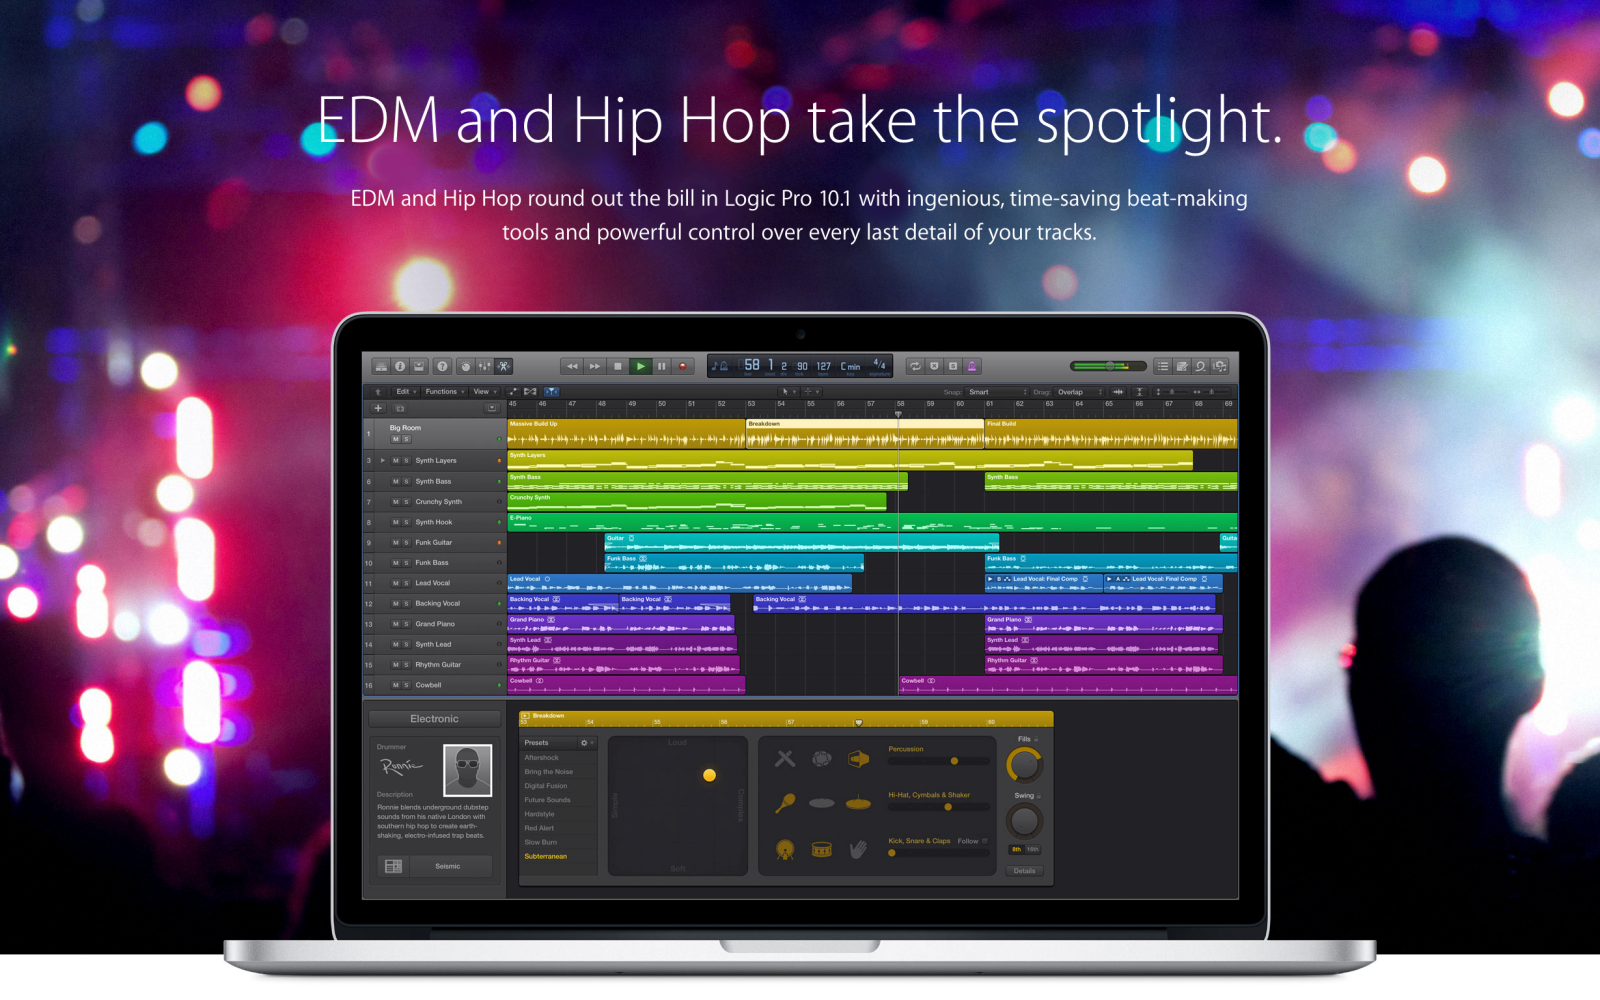 The Logic Pros: How to customize Logic's Drummer, beat-by-beat